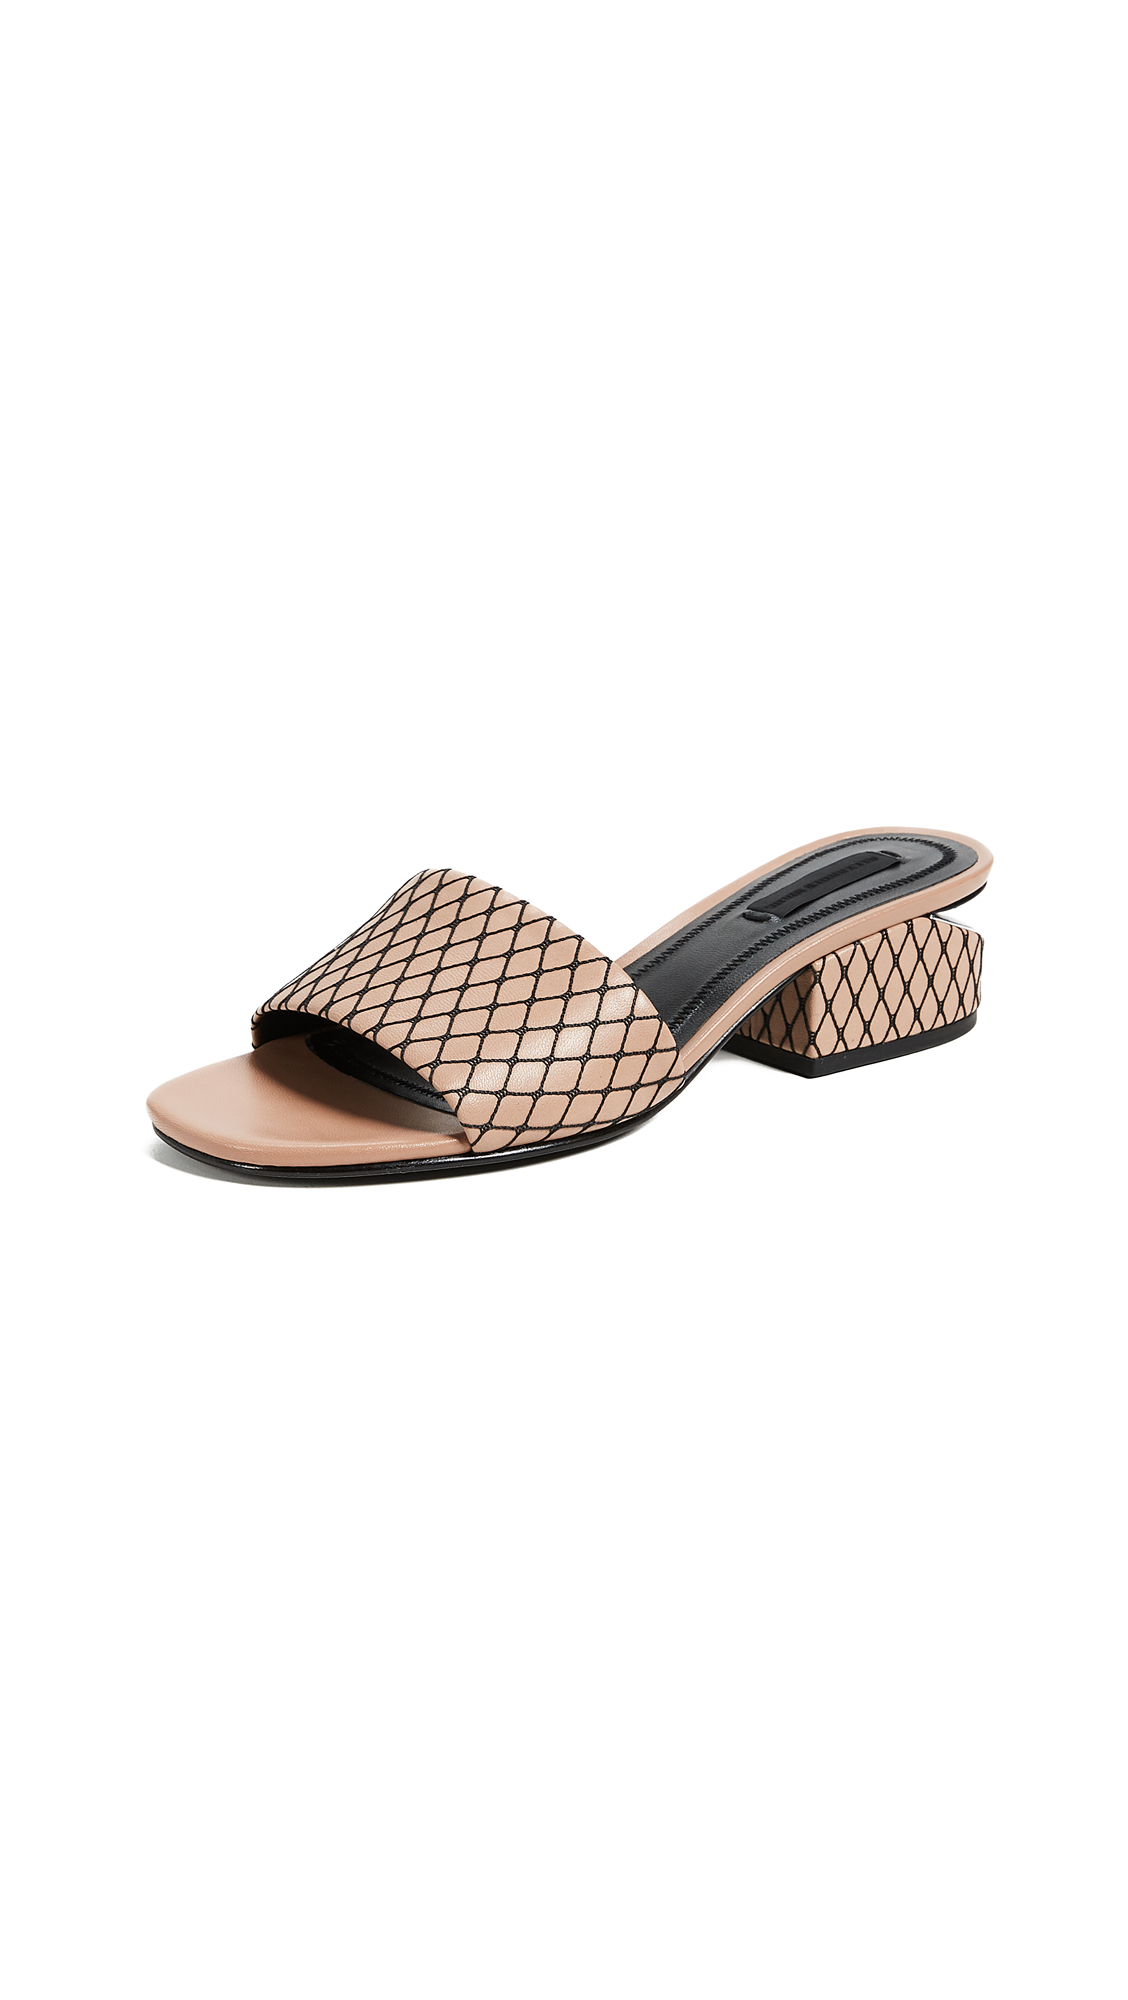 Alexander Wang Lou Low Heel Slide Sandals - Nude